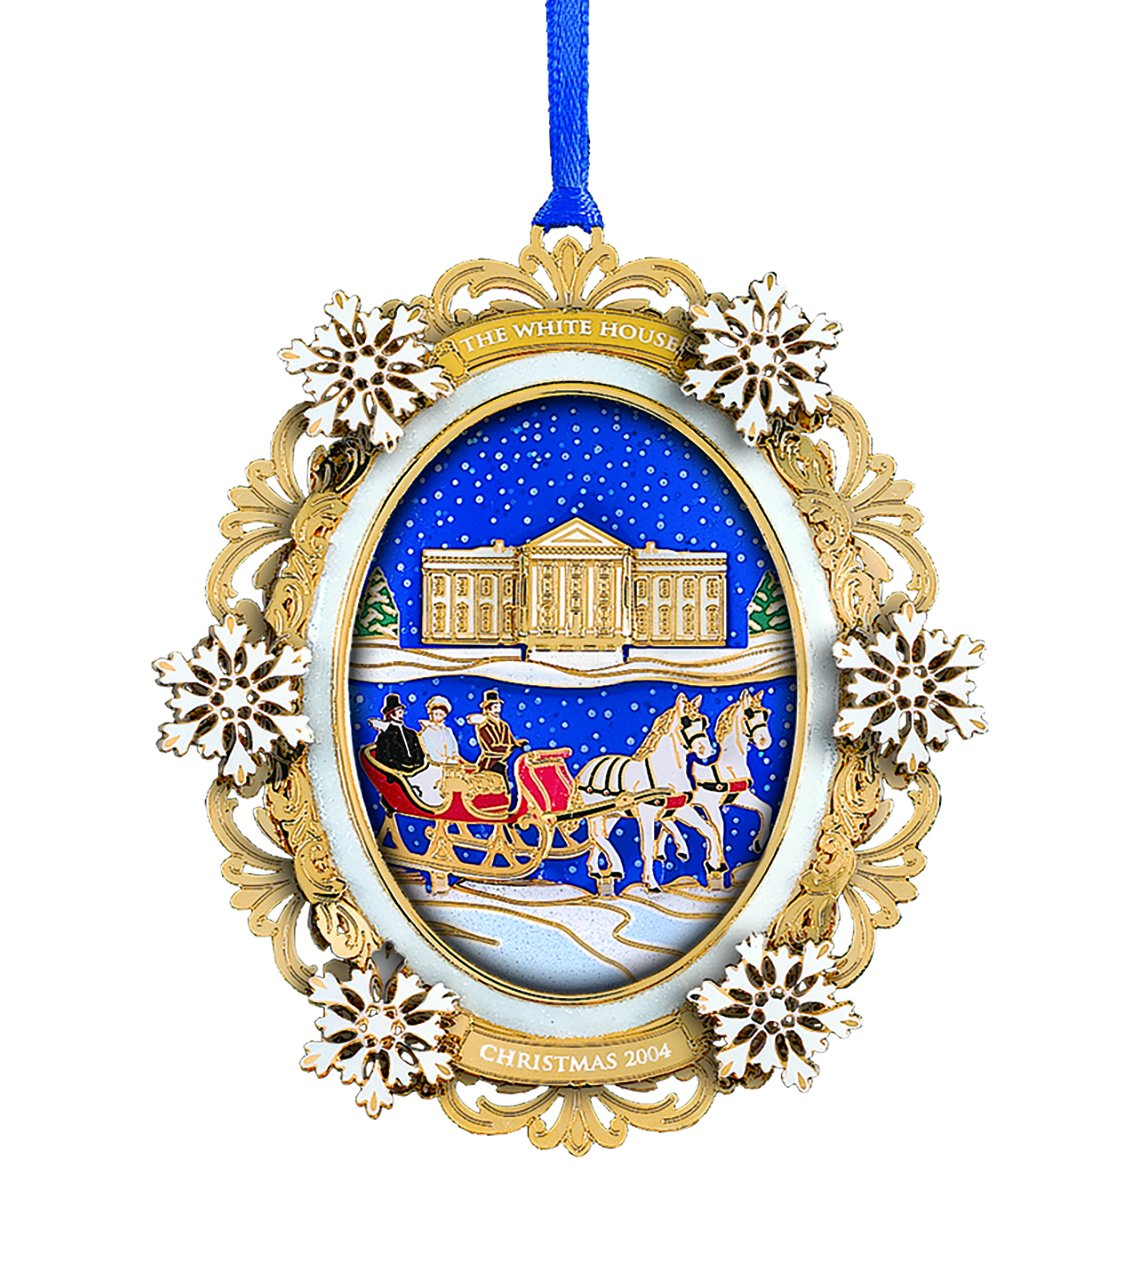 2004 White House Christmas Ornament, A First Family's Sleigh Ride